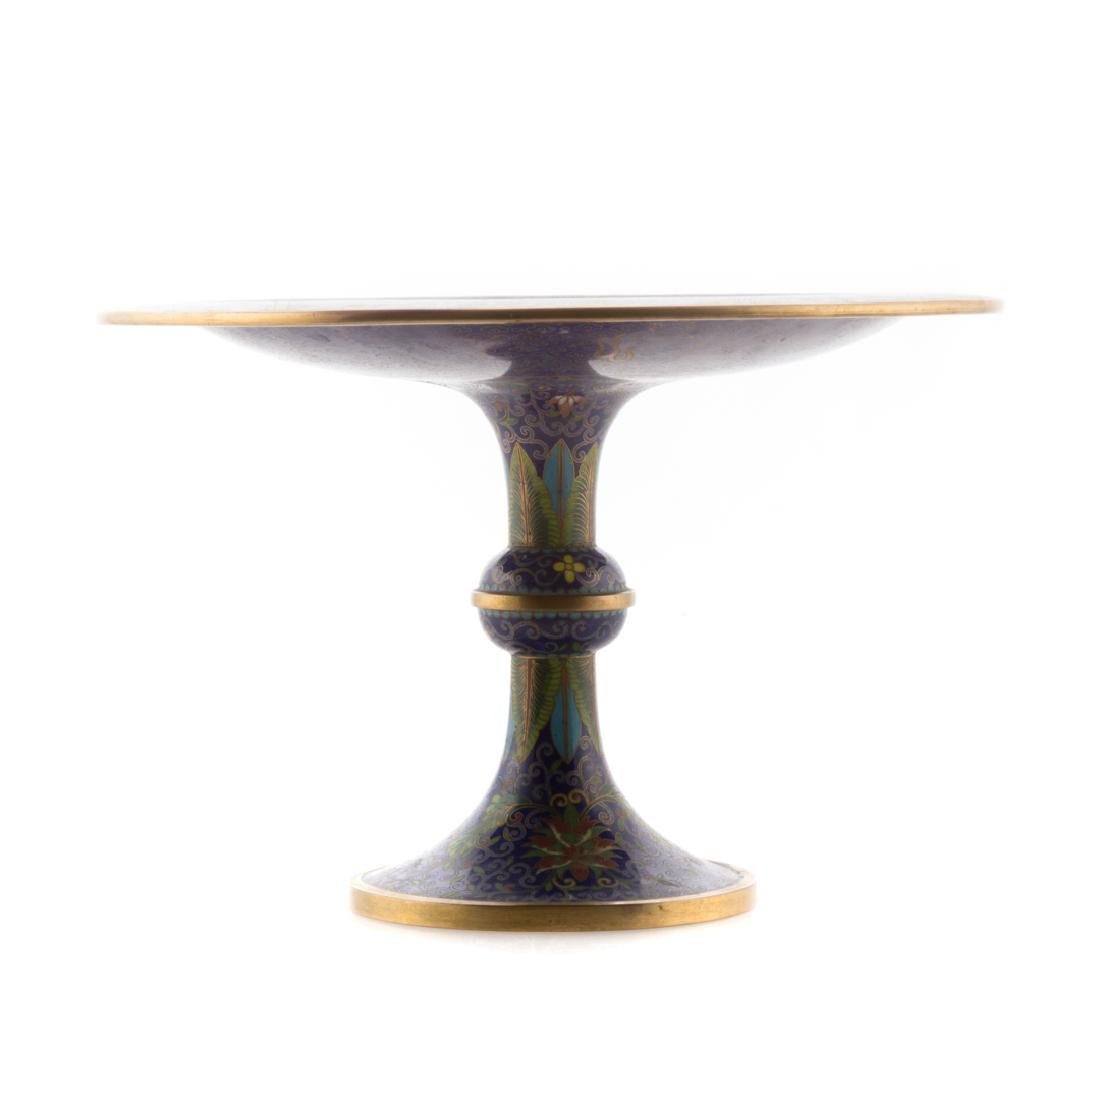 Chinese cloisonne enamel compote